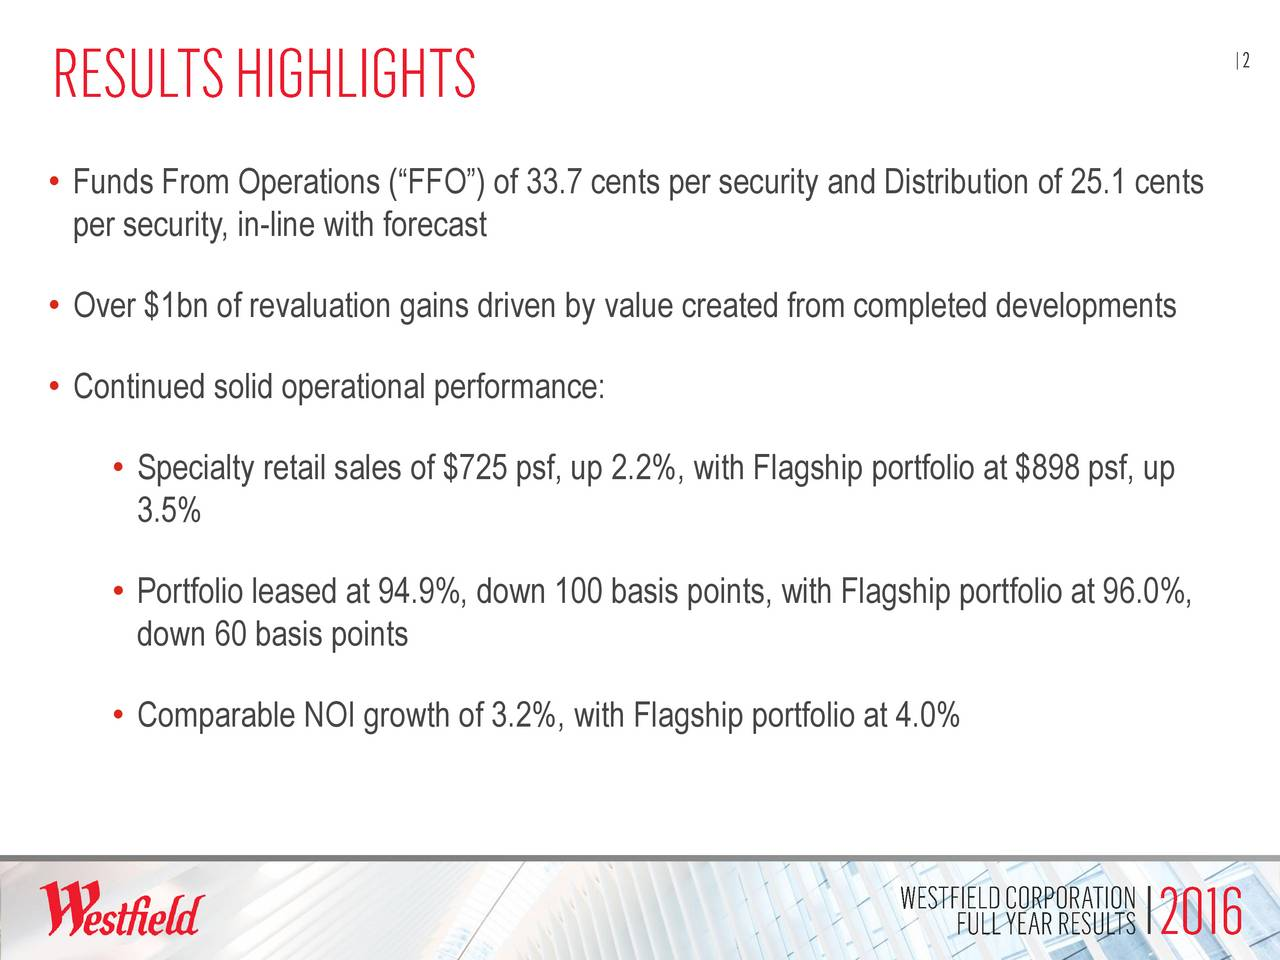 per security, in-line with forecast Over $1bn of revaluation gains driven by value created from completed developments Continued solid operational performance: Specialty retail sales of $725 psf, up 2.2%, with Flagship portfolio at $898 psf, up 3.5% Portfolio leased at 94.9%, down 100 basis points, with Flagship portfolio at 96.0%, down 60 basis points Comparable NOI growth of 3.2%, with Flagship portfolio at 4.0%